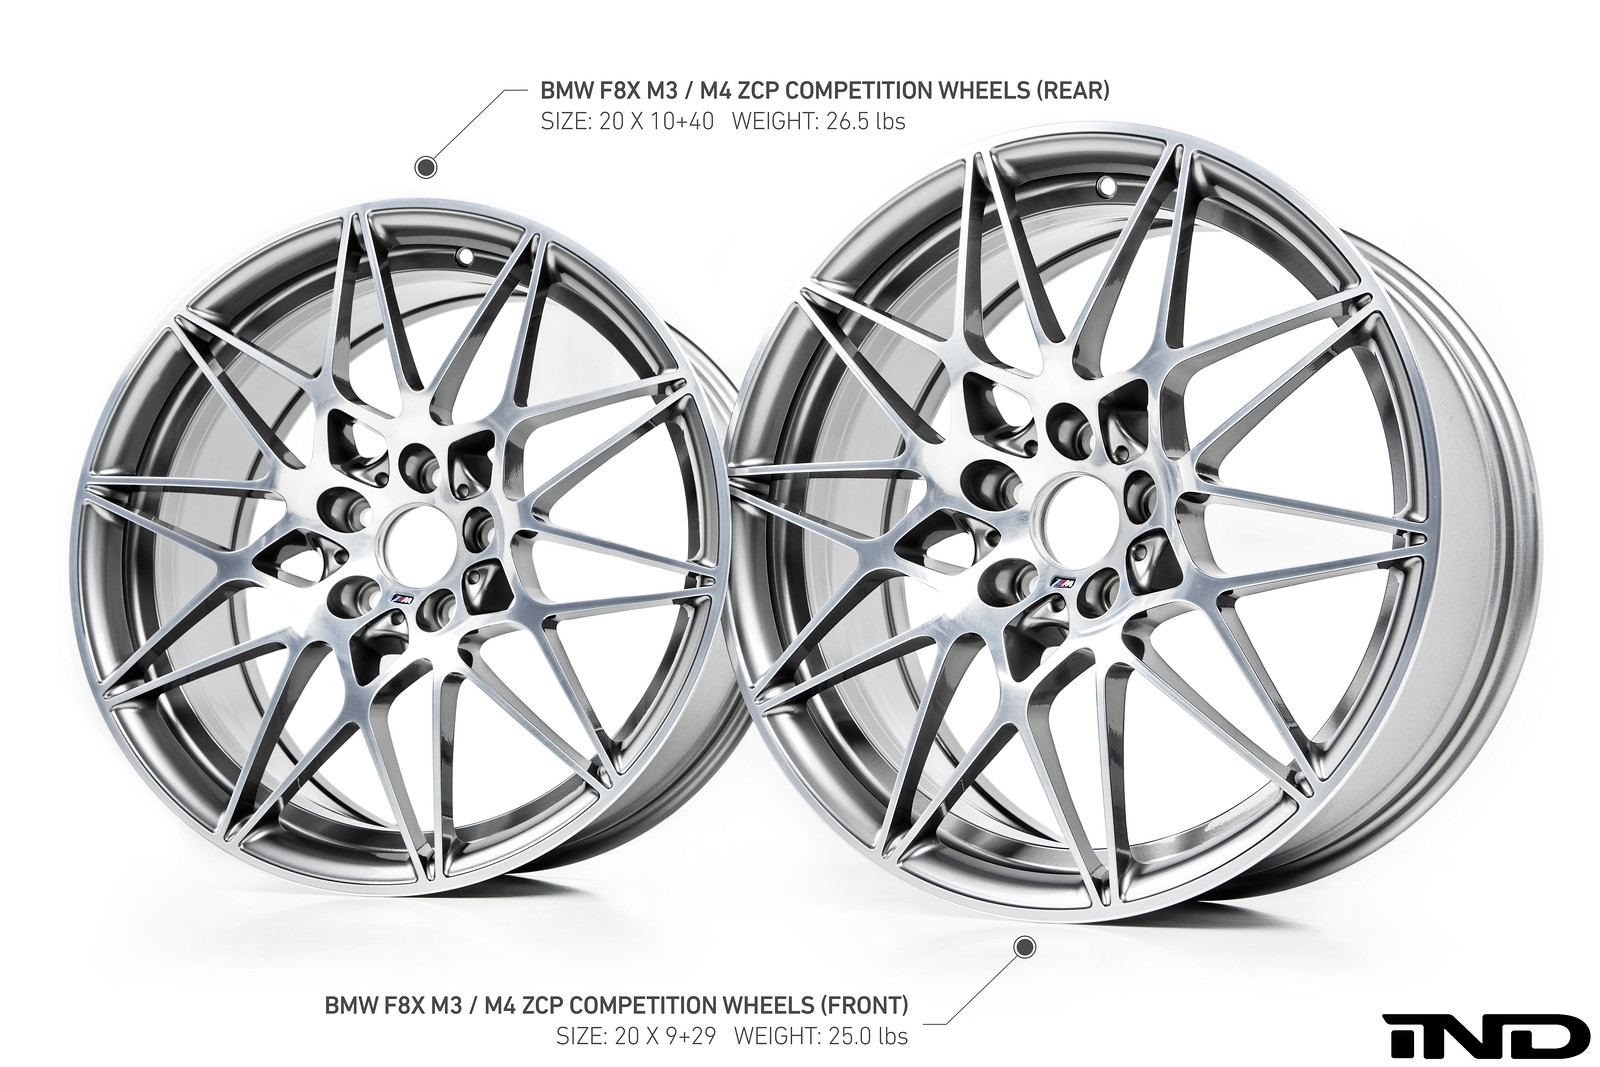 New At Ind Bmw Zcp Wheels